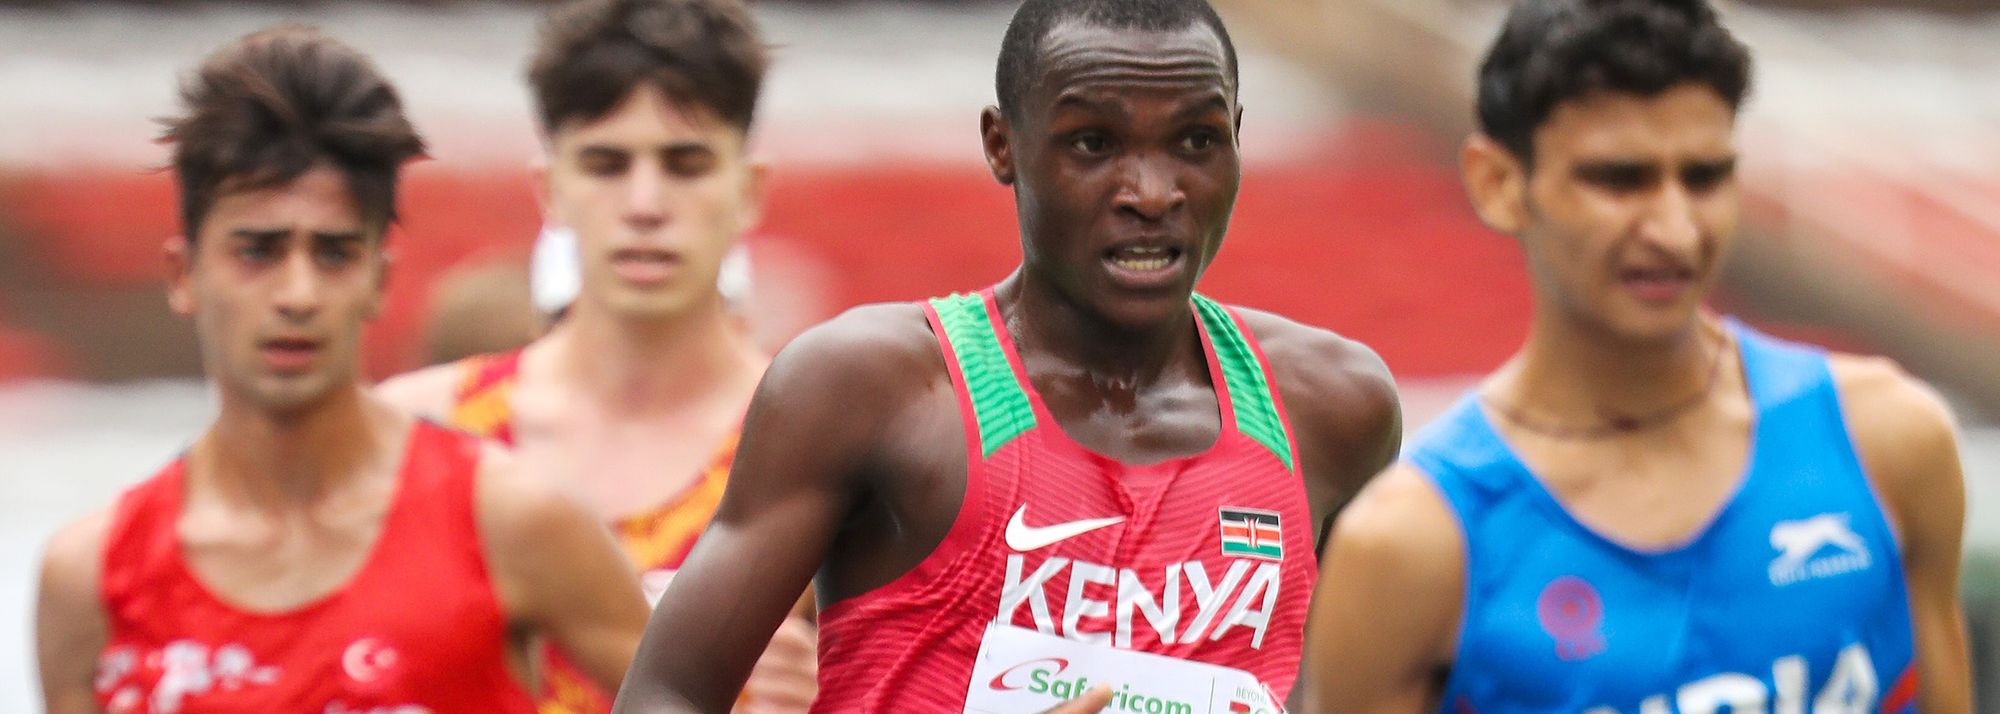 For fans of athletics, perhaps the best thing about age-group championships is how they offer a window into the future of the sport – a glimpse of the names and faces that will light up the track, field and roads at senior level in years to come.